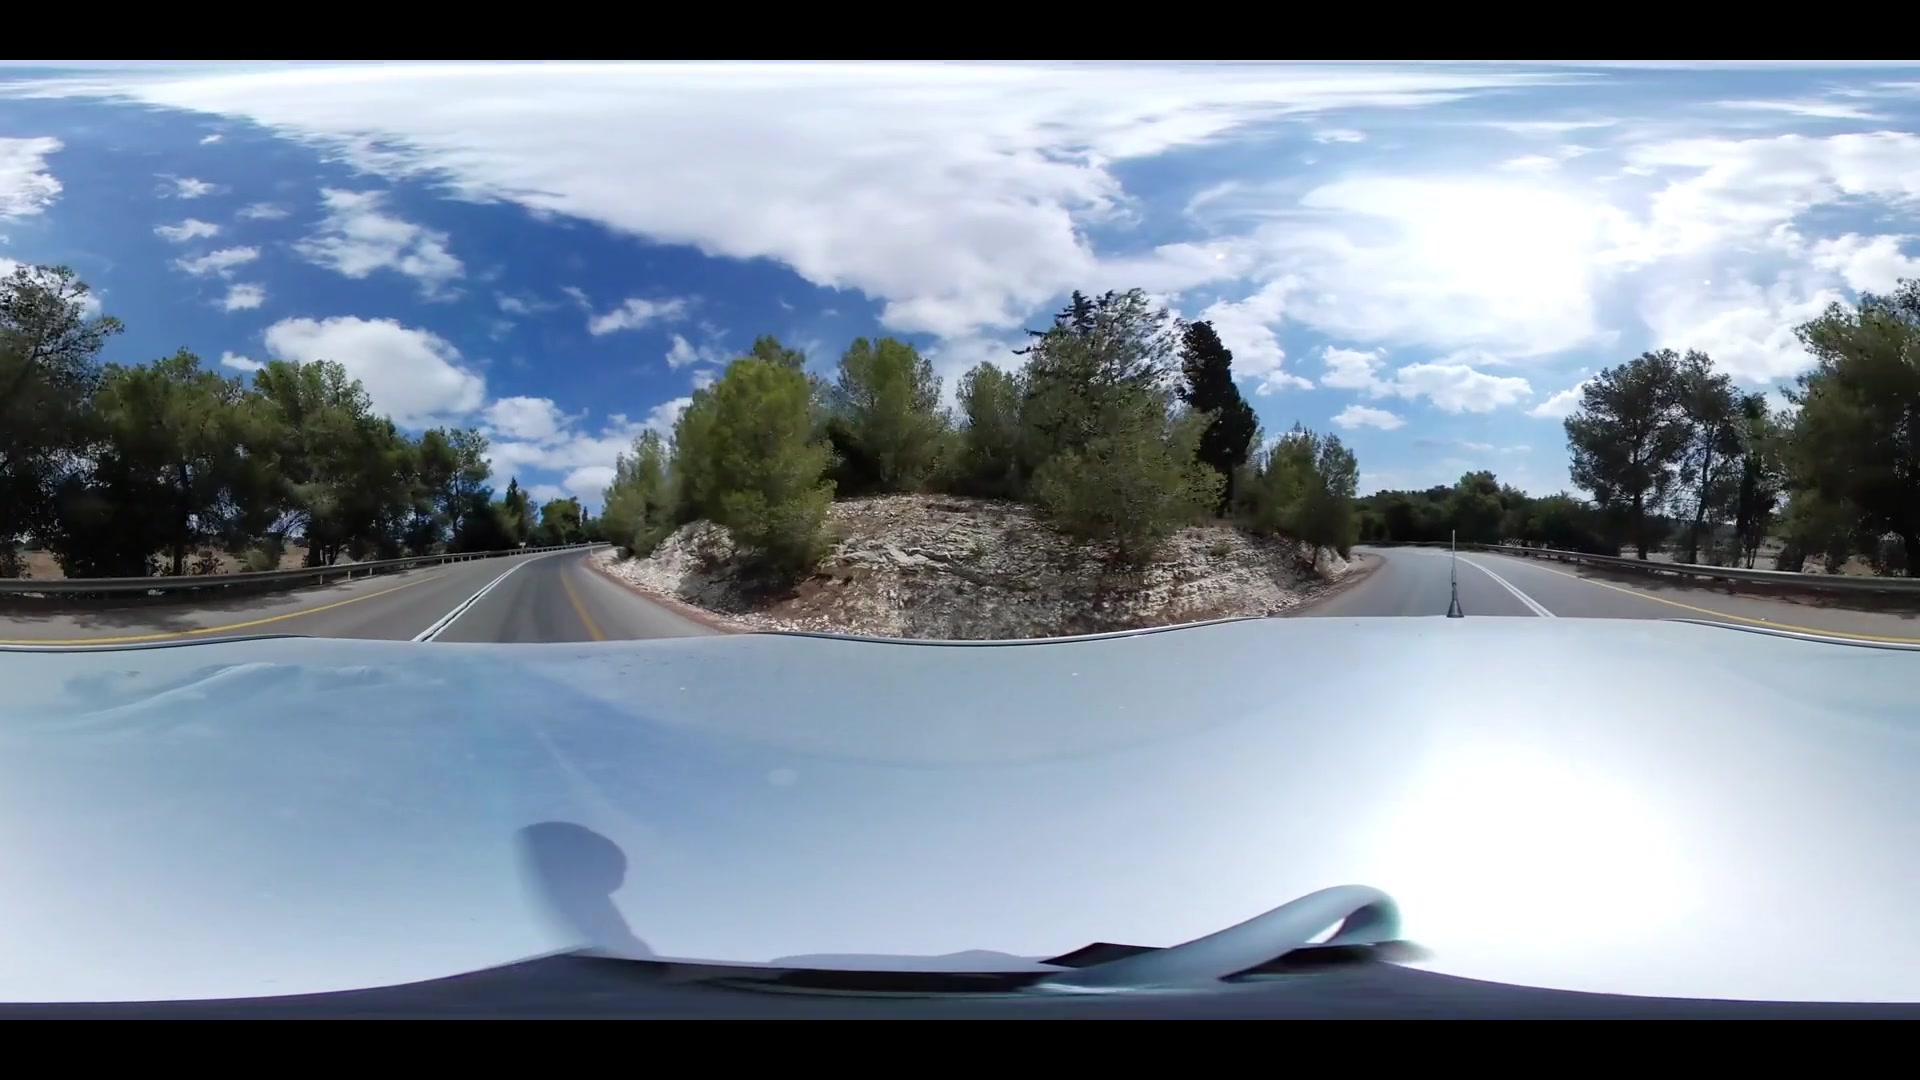 360 VR video of a car driving through a countryside road in nature